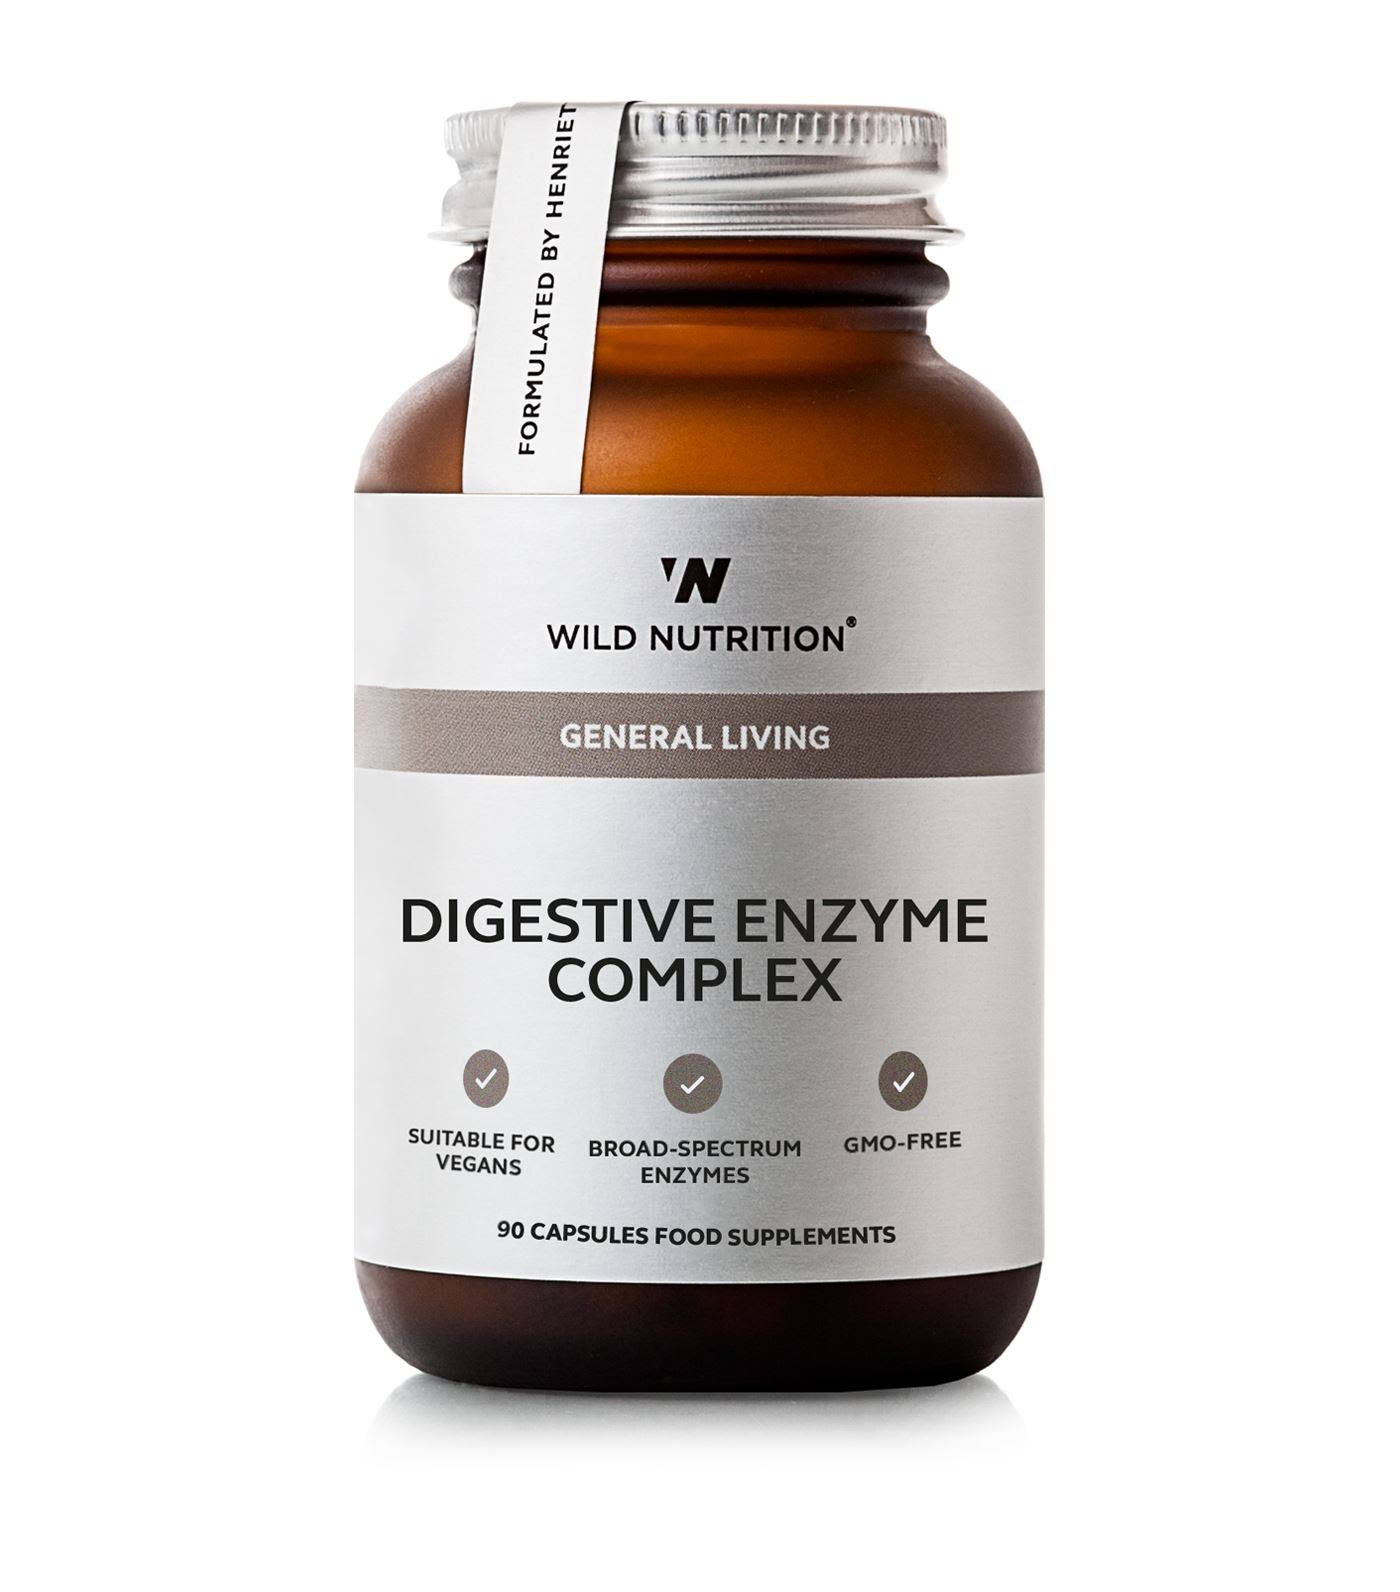 Wild Nutrition Digestive Enzyme Complex Food Supplement - 90 Capsules